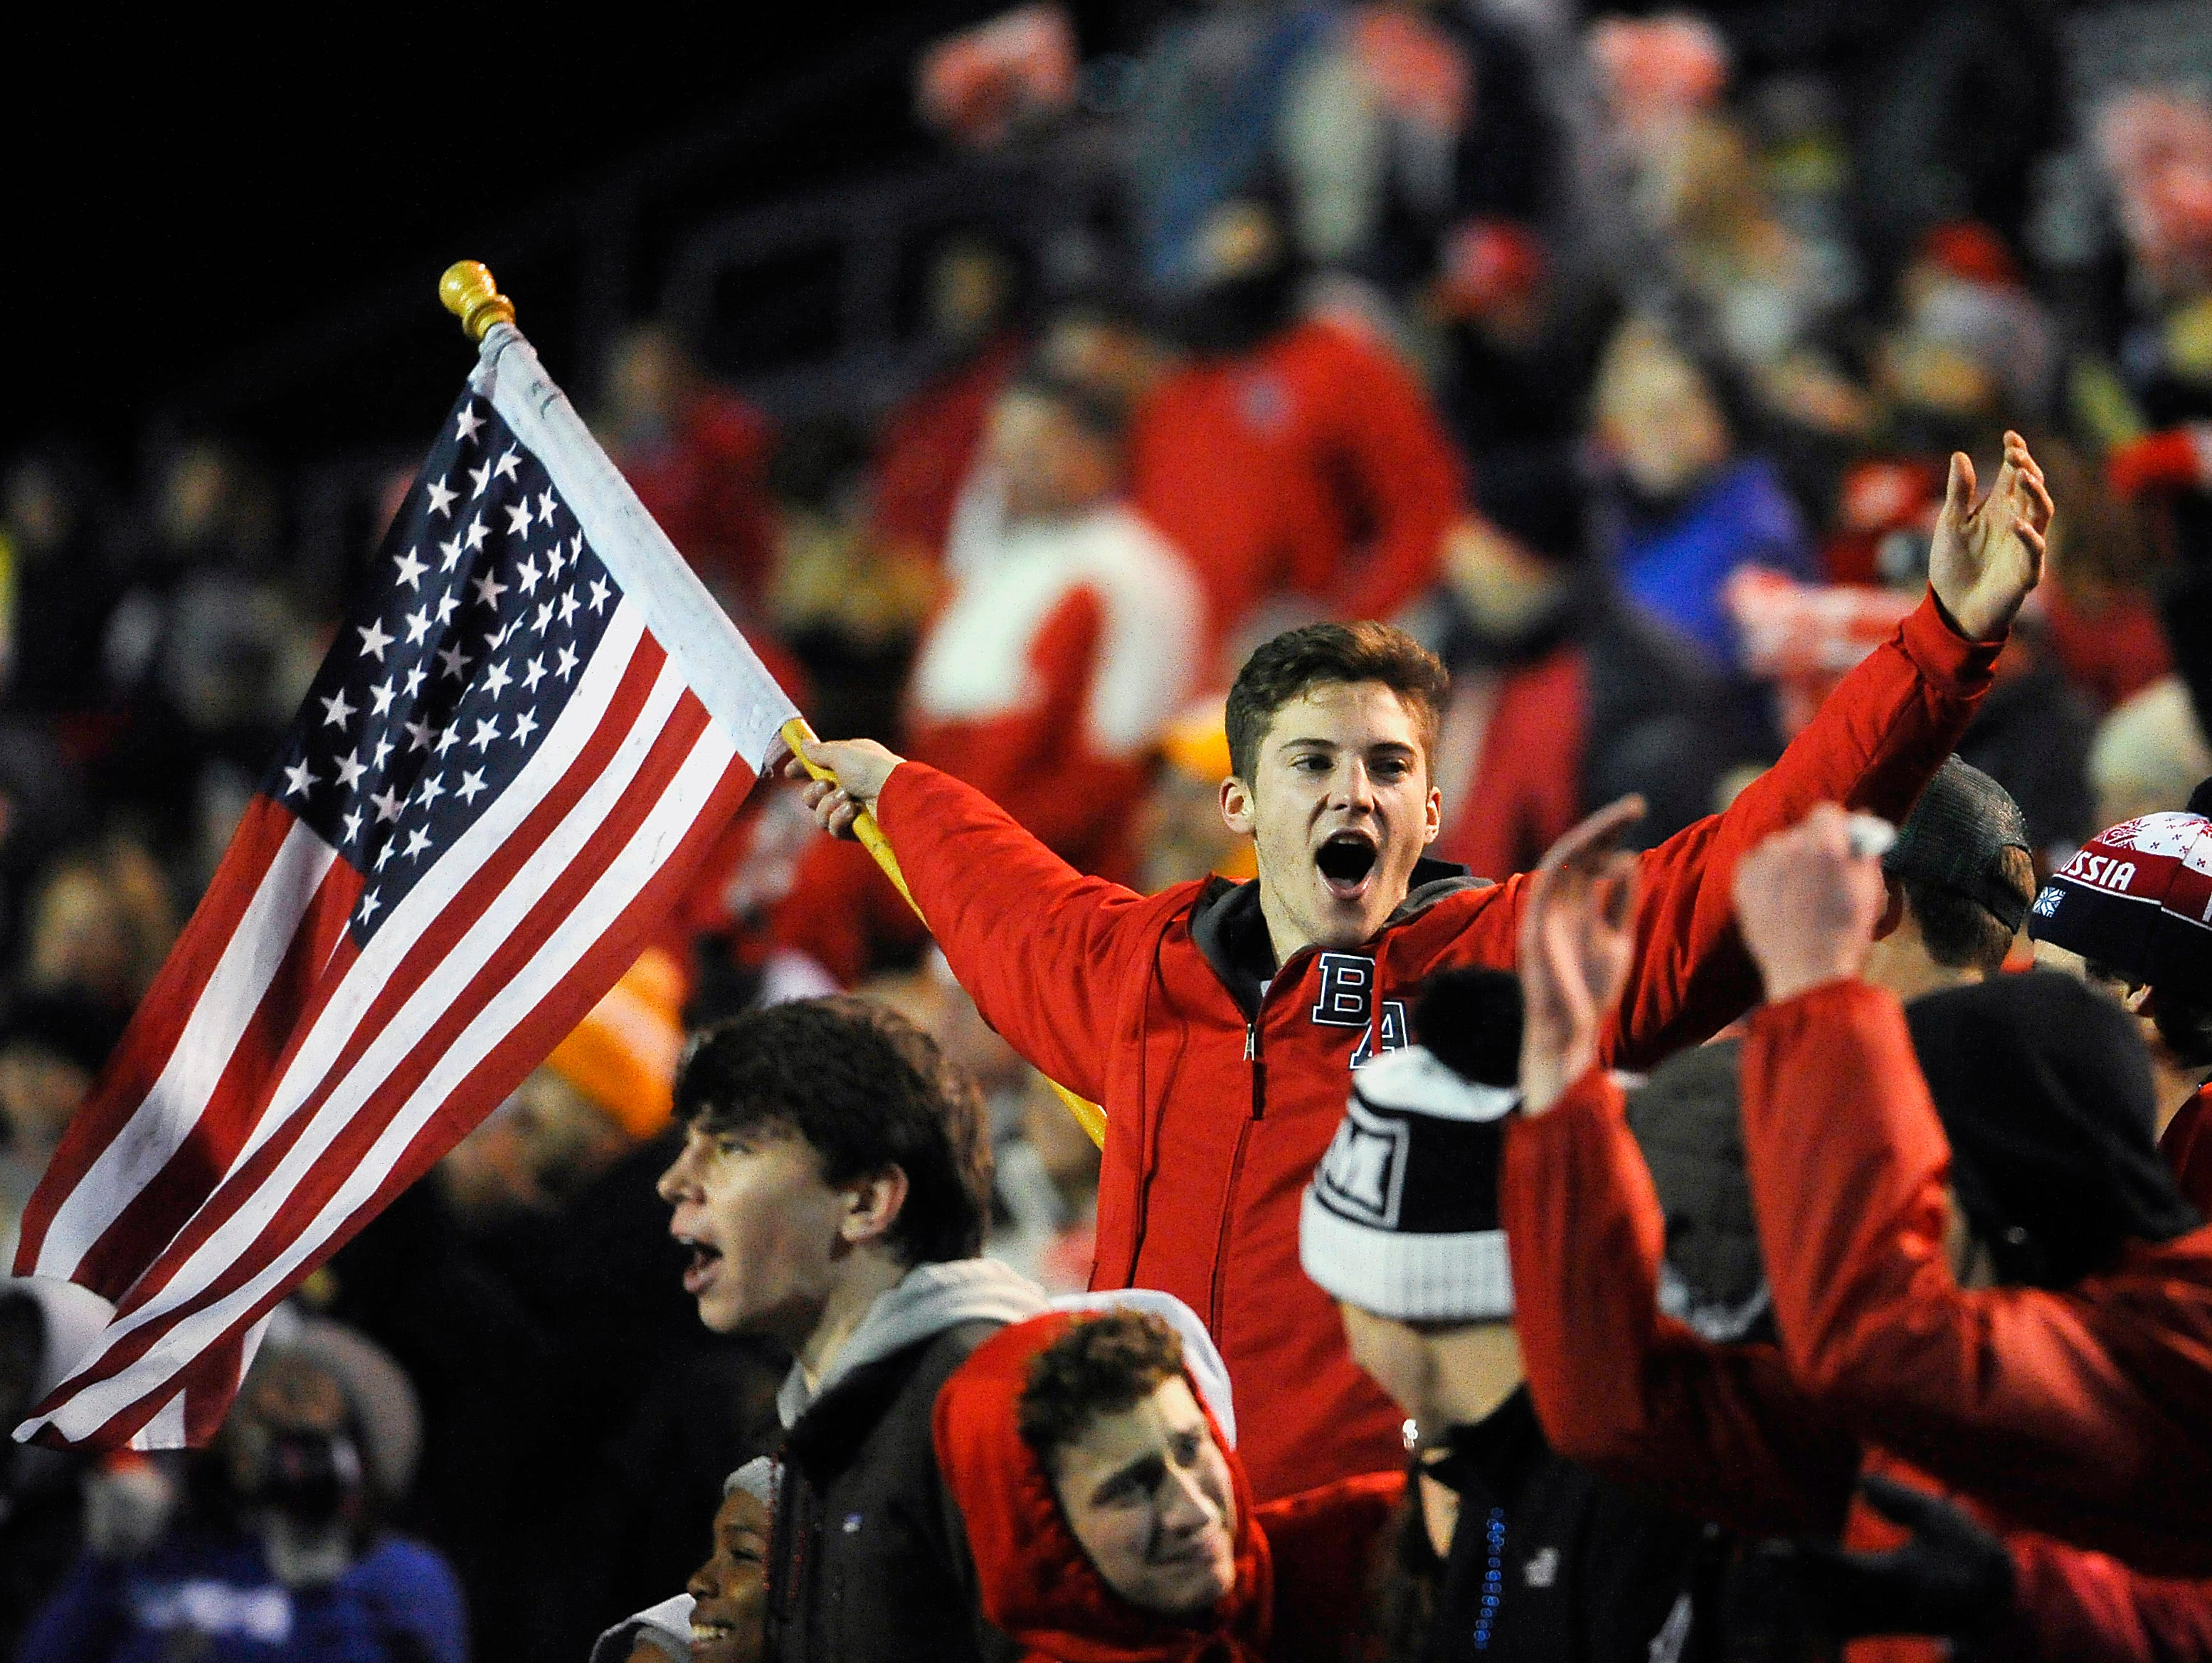 Brentwood Academy fans cheer on their team during the BlueCross Bowl DII-AA state title game on Thursday, Dec. 3, 2015, in Cookeville. Brentwood Academy beat MBA 56-55 in the second overtime period.